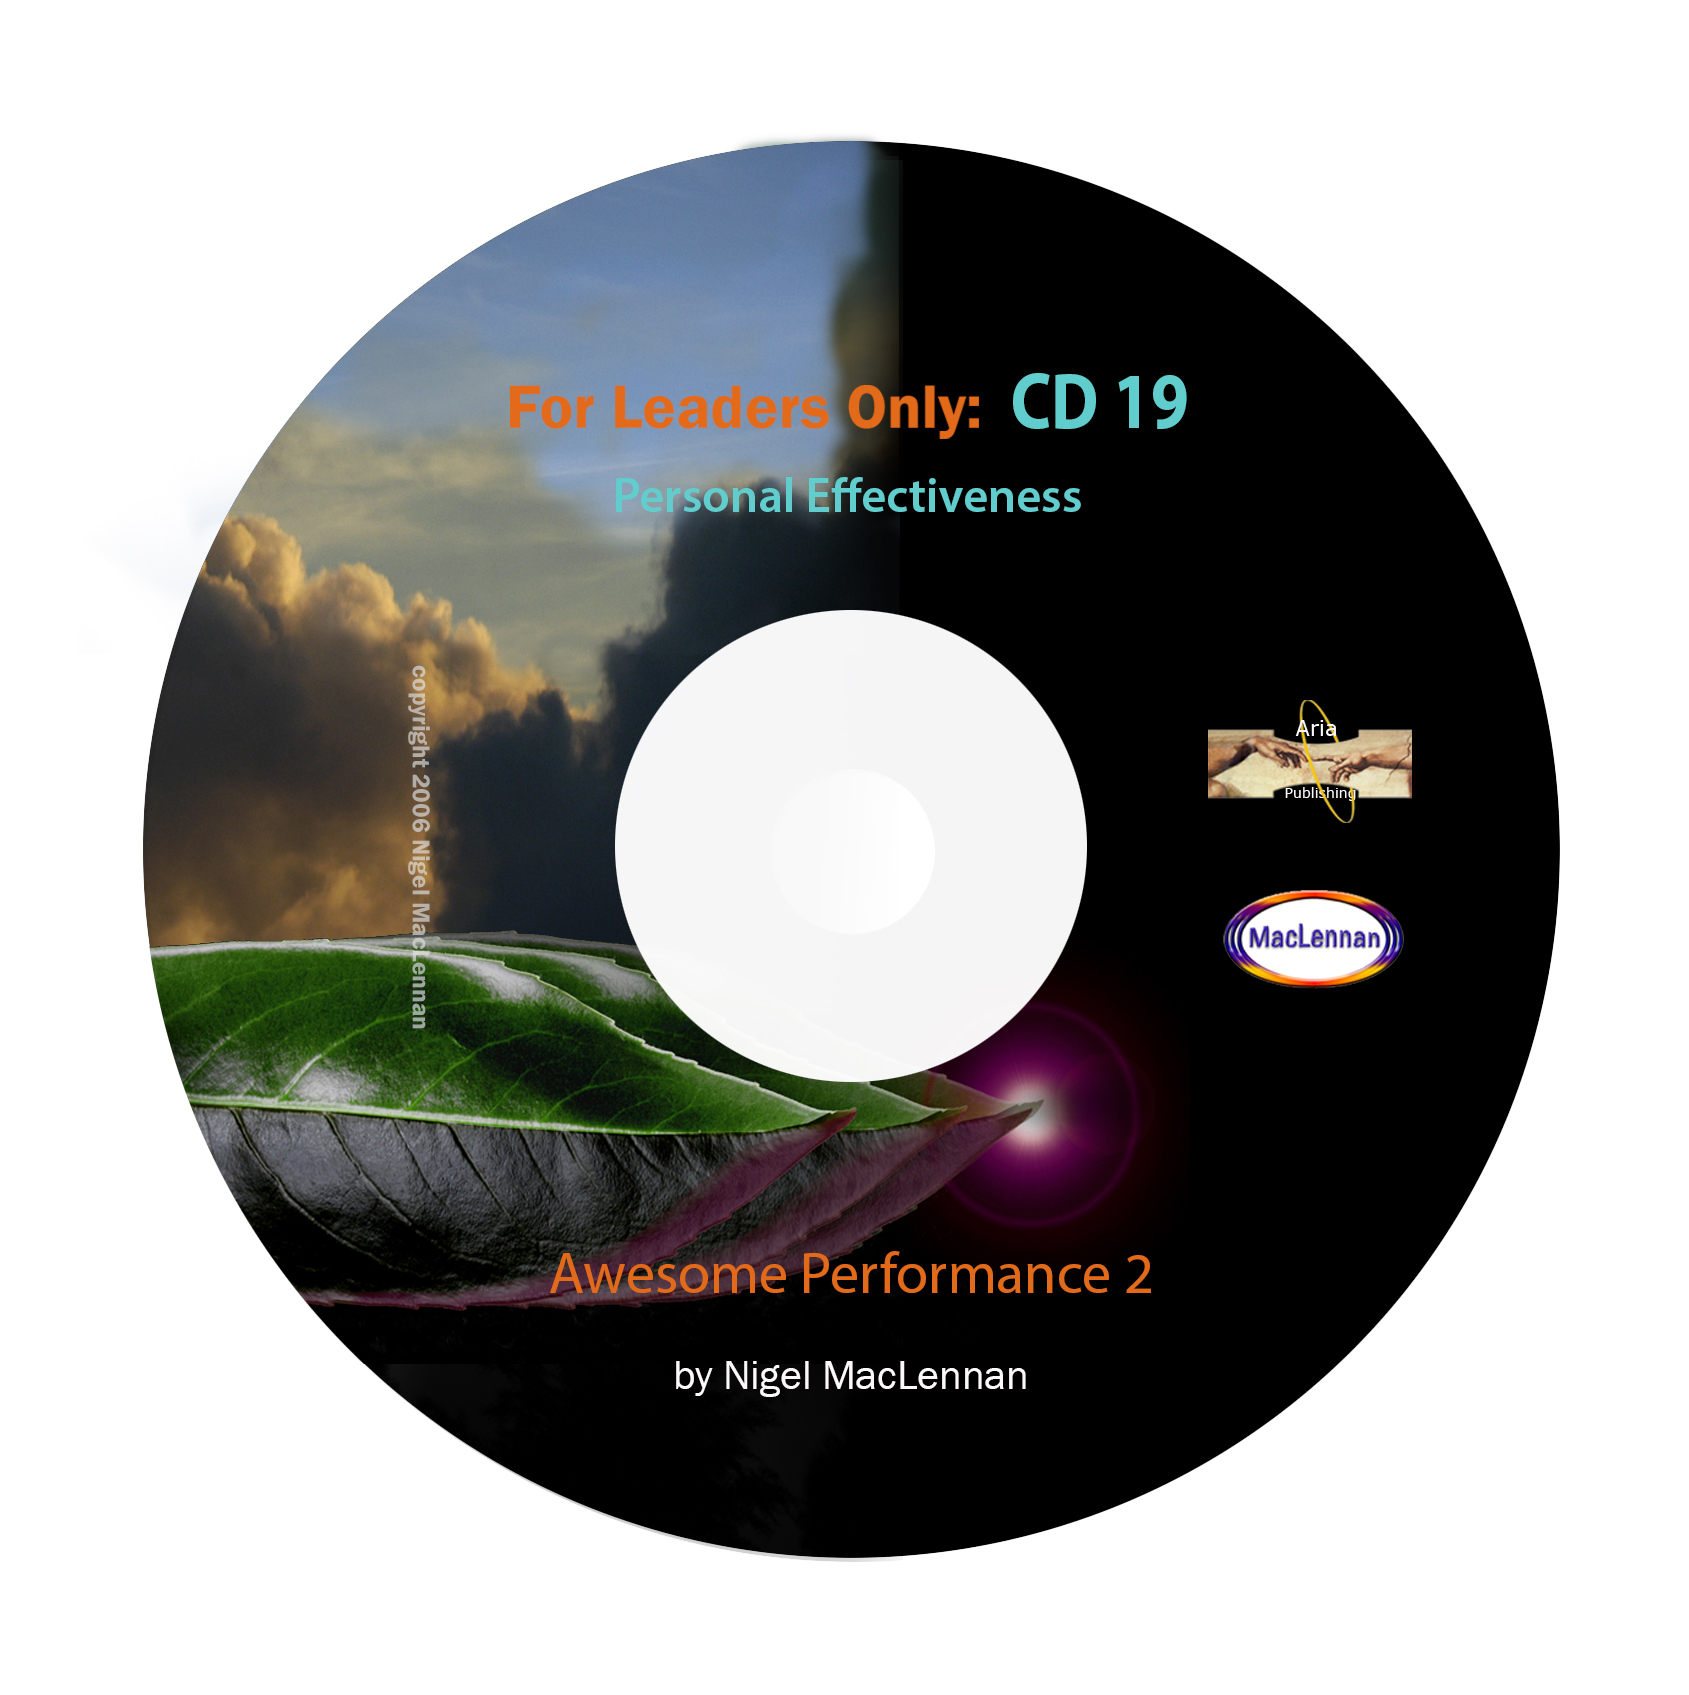 For Leaders Only - Awesome Performance 2 CD